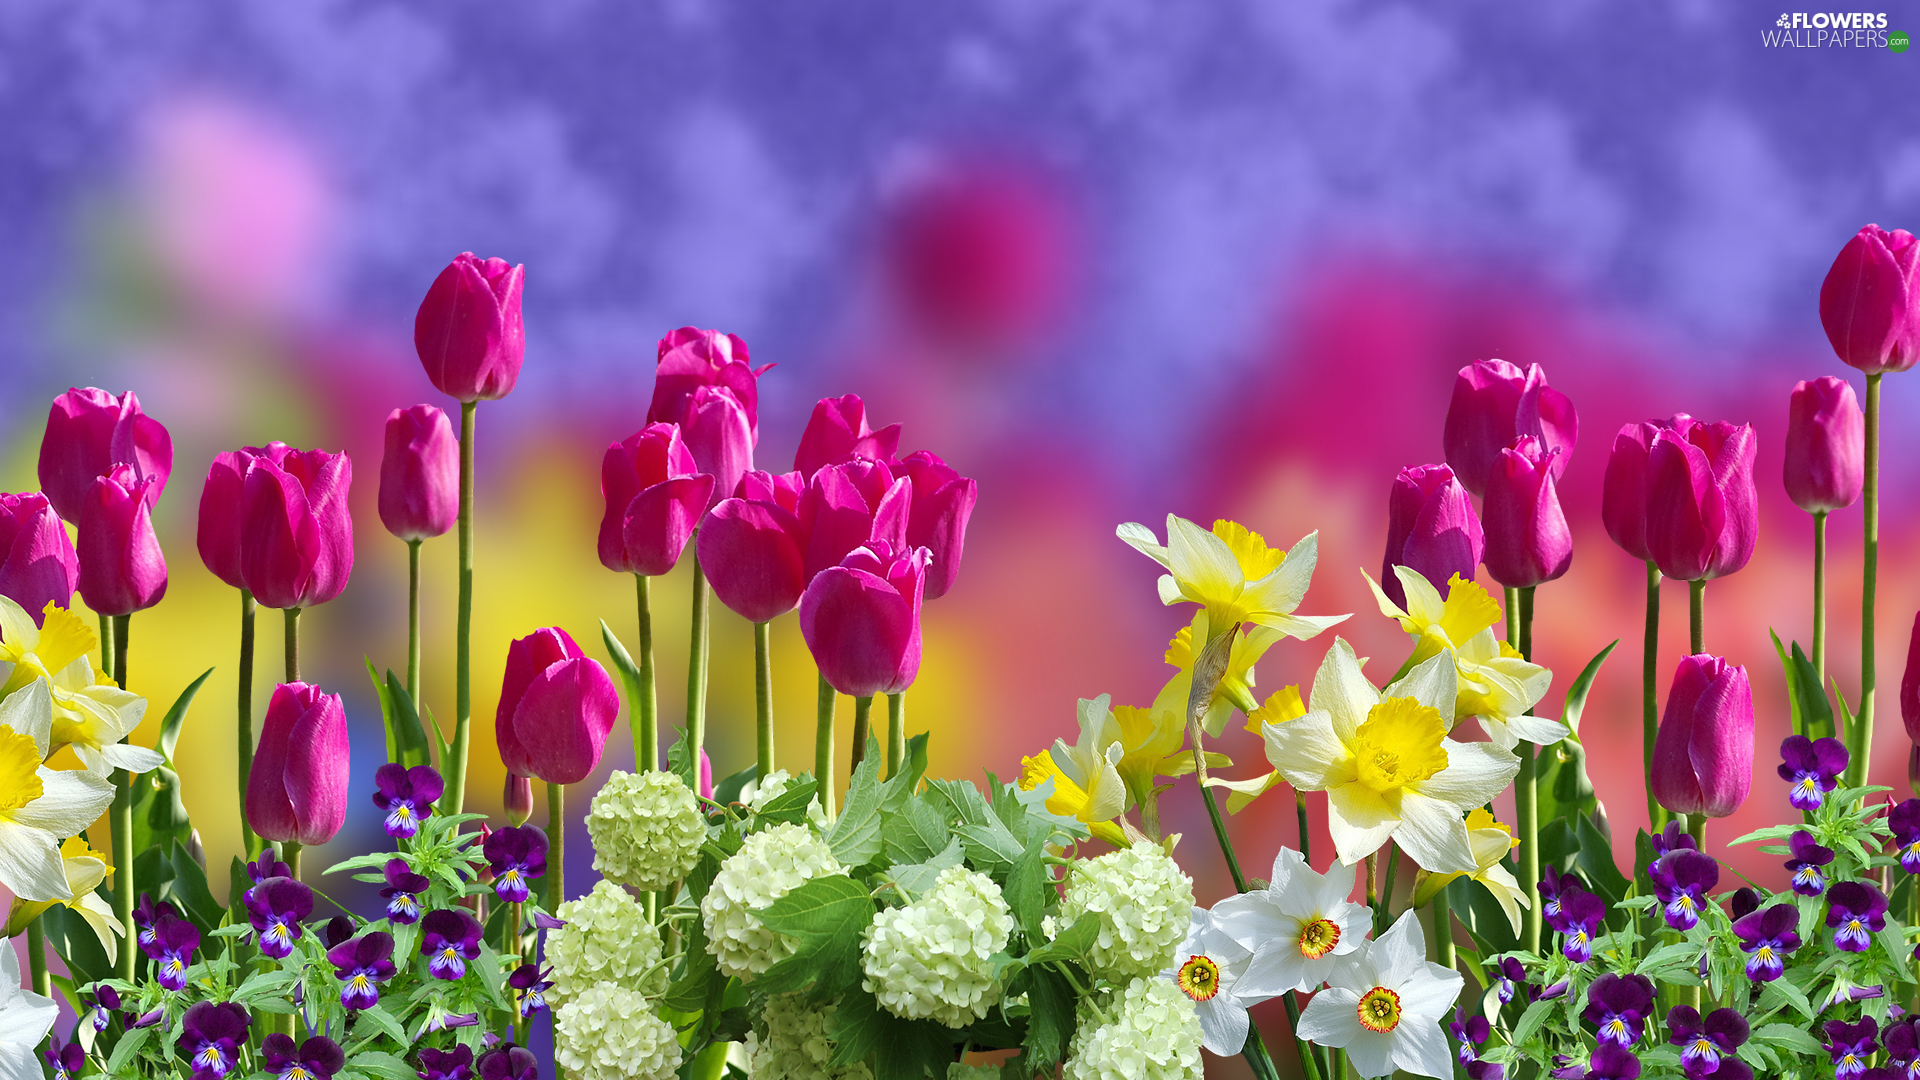 Pansies, Blur, Narcissus, Daffodils, Tulips